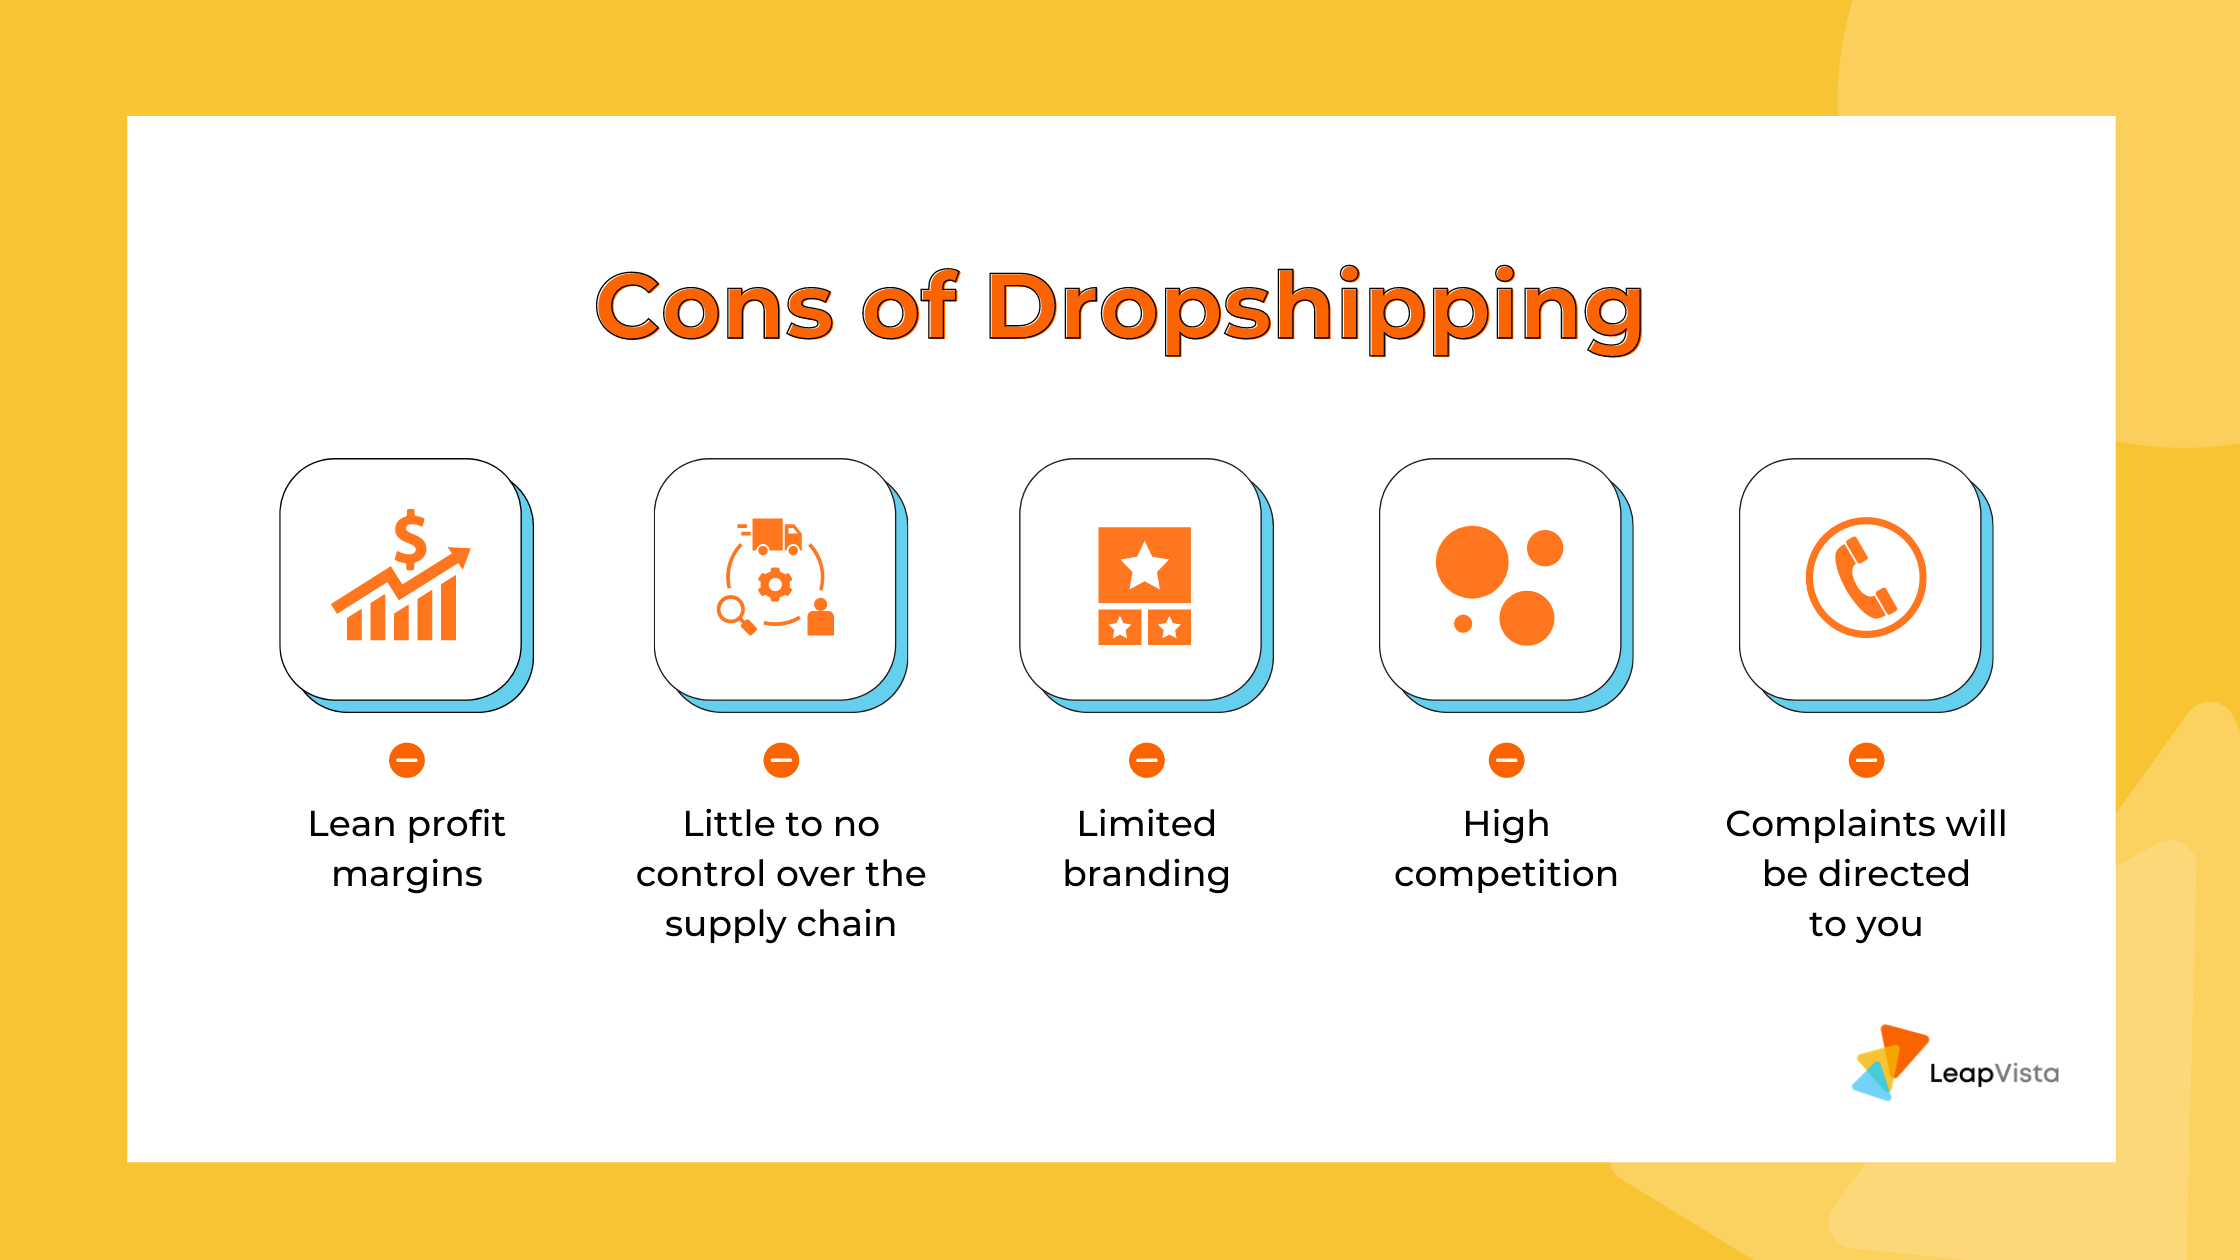 Cons of the dropshipping business model